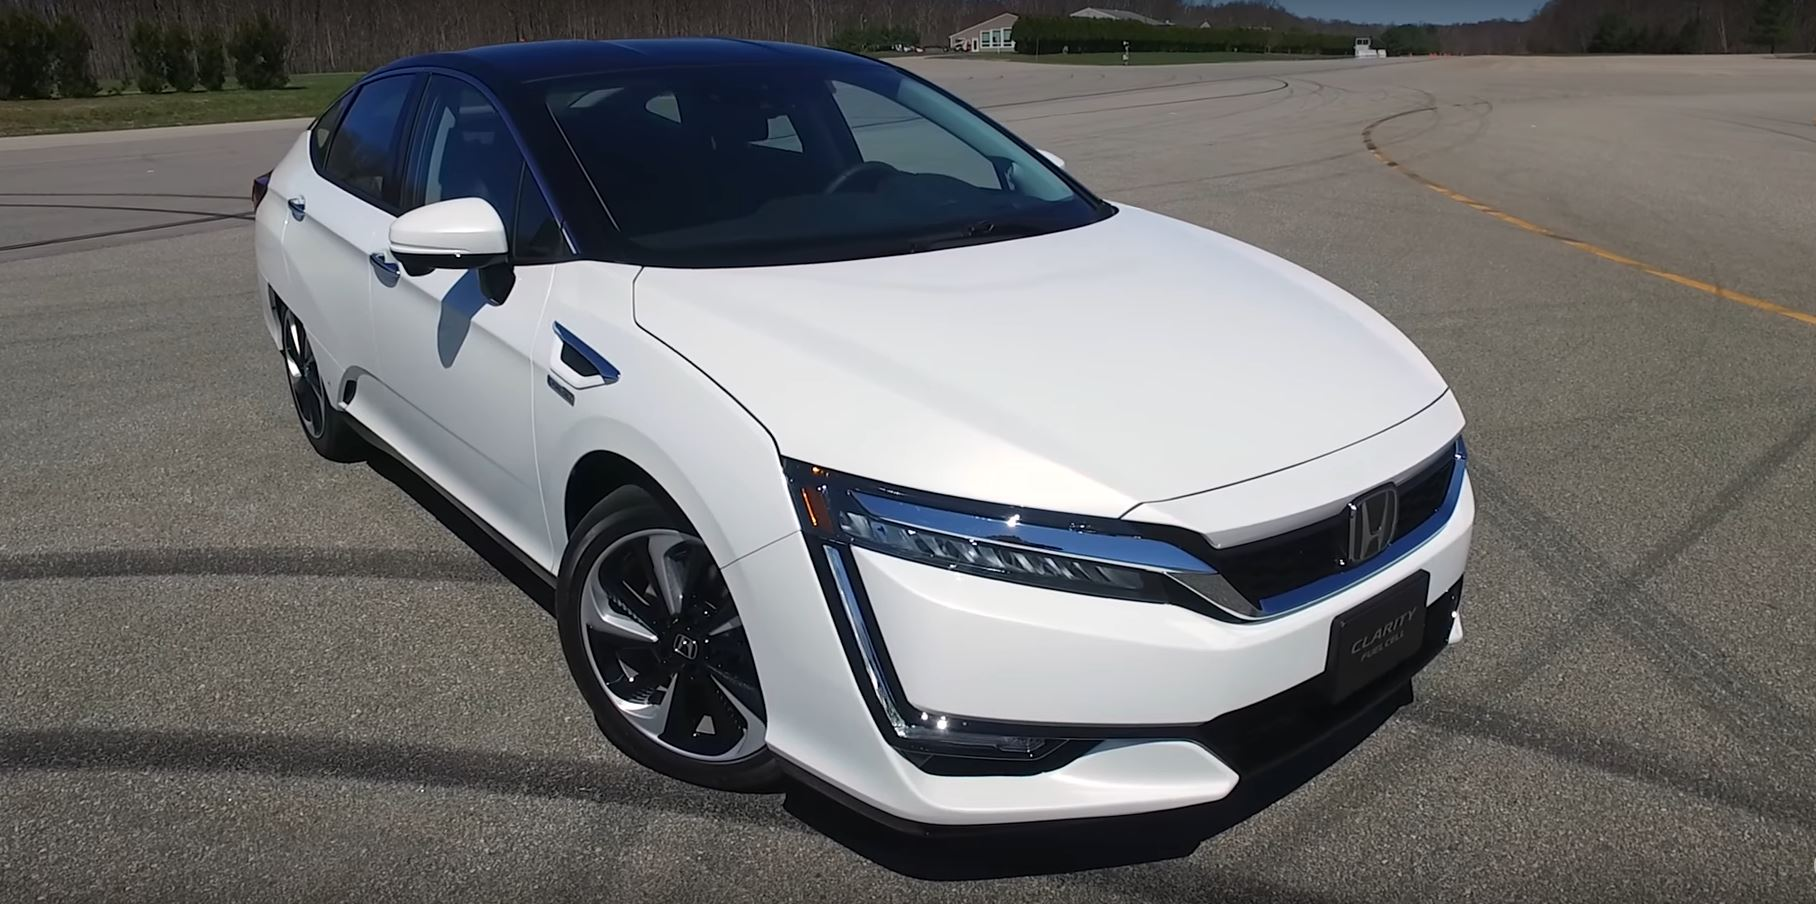 5 Photos Honda Clarity Flaws Revealed By Consumer Reports